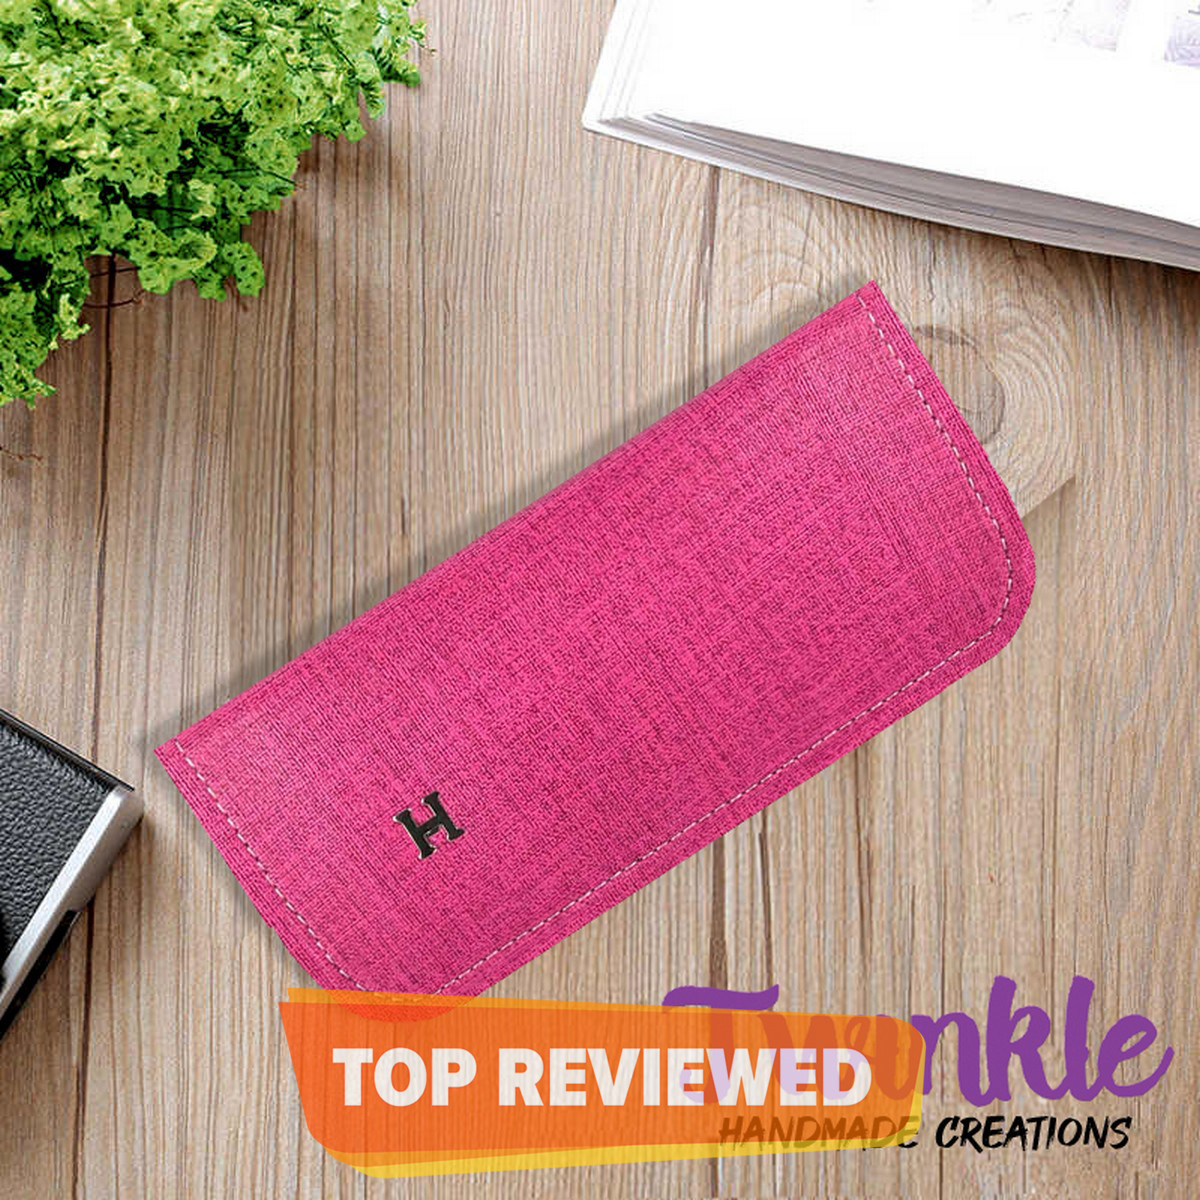 Clutch Hand Purse Stylish Leather Mobile Wallets - Daily Use For Girls - PU Faux Leather New Design For Women